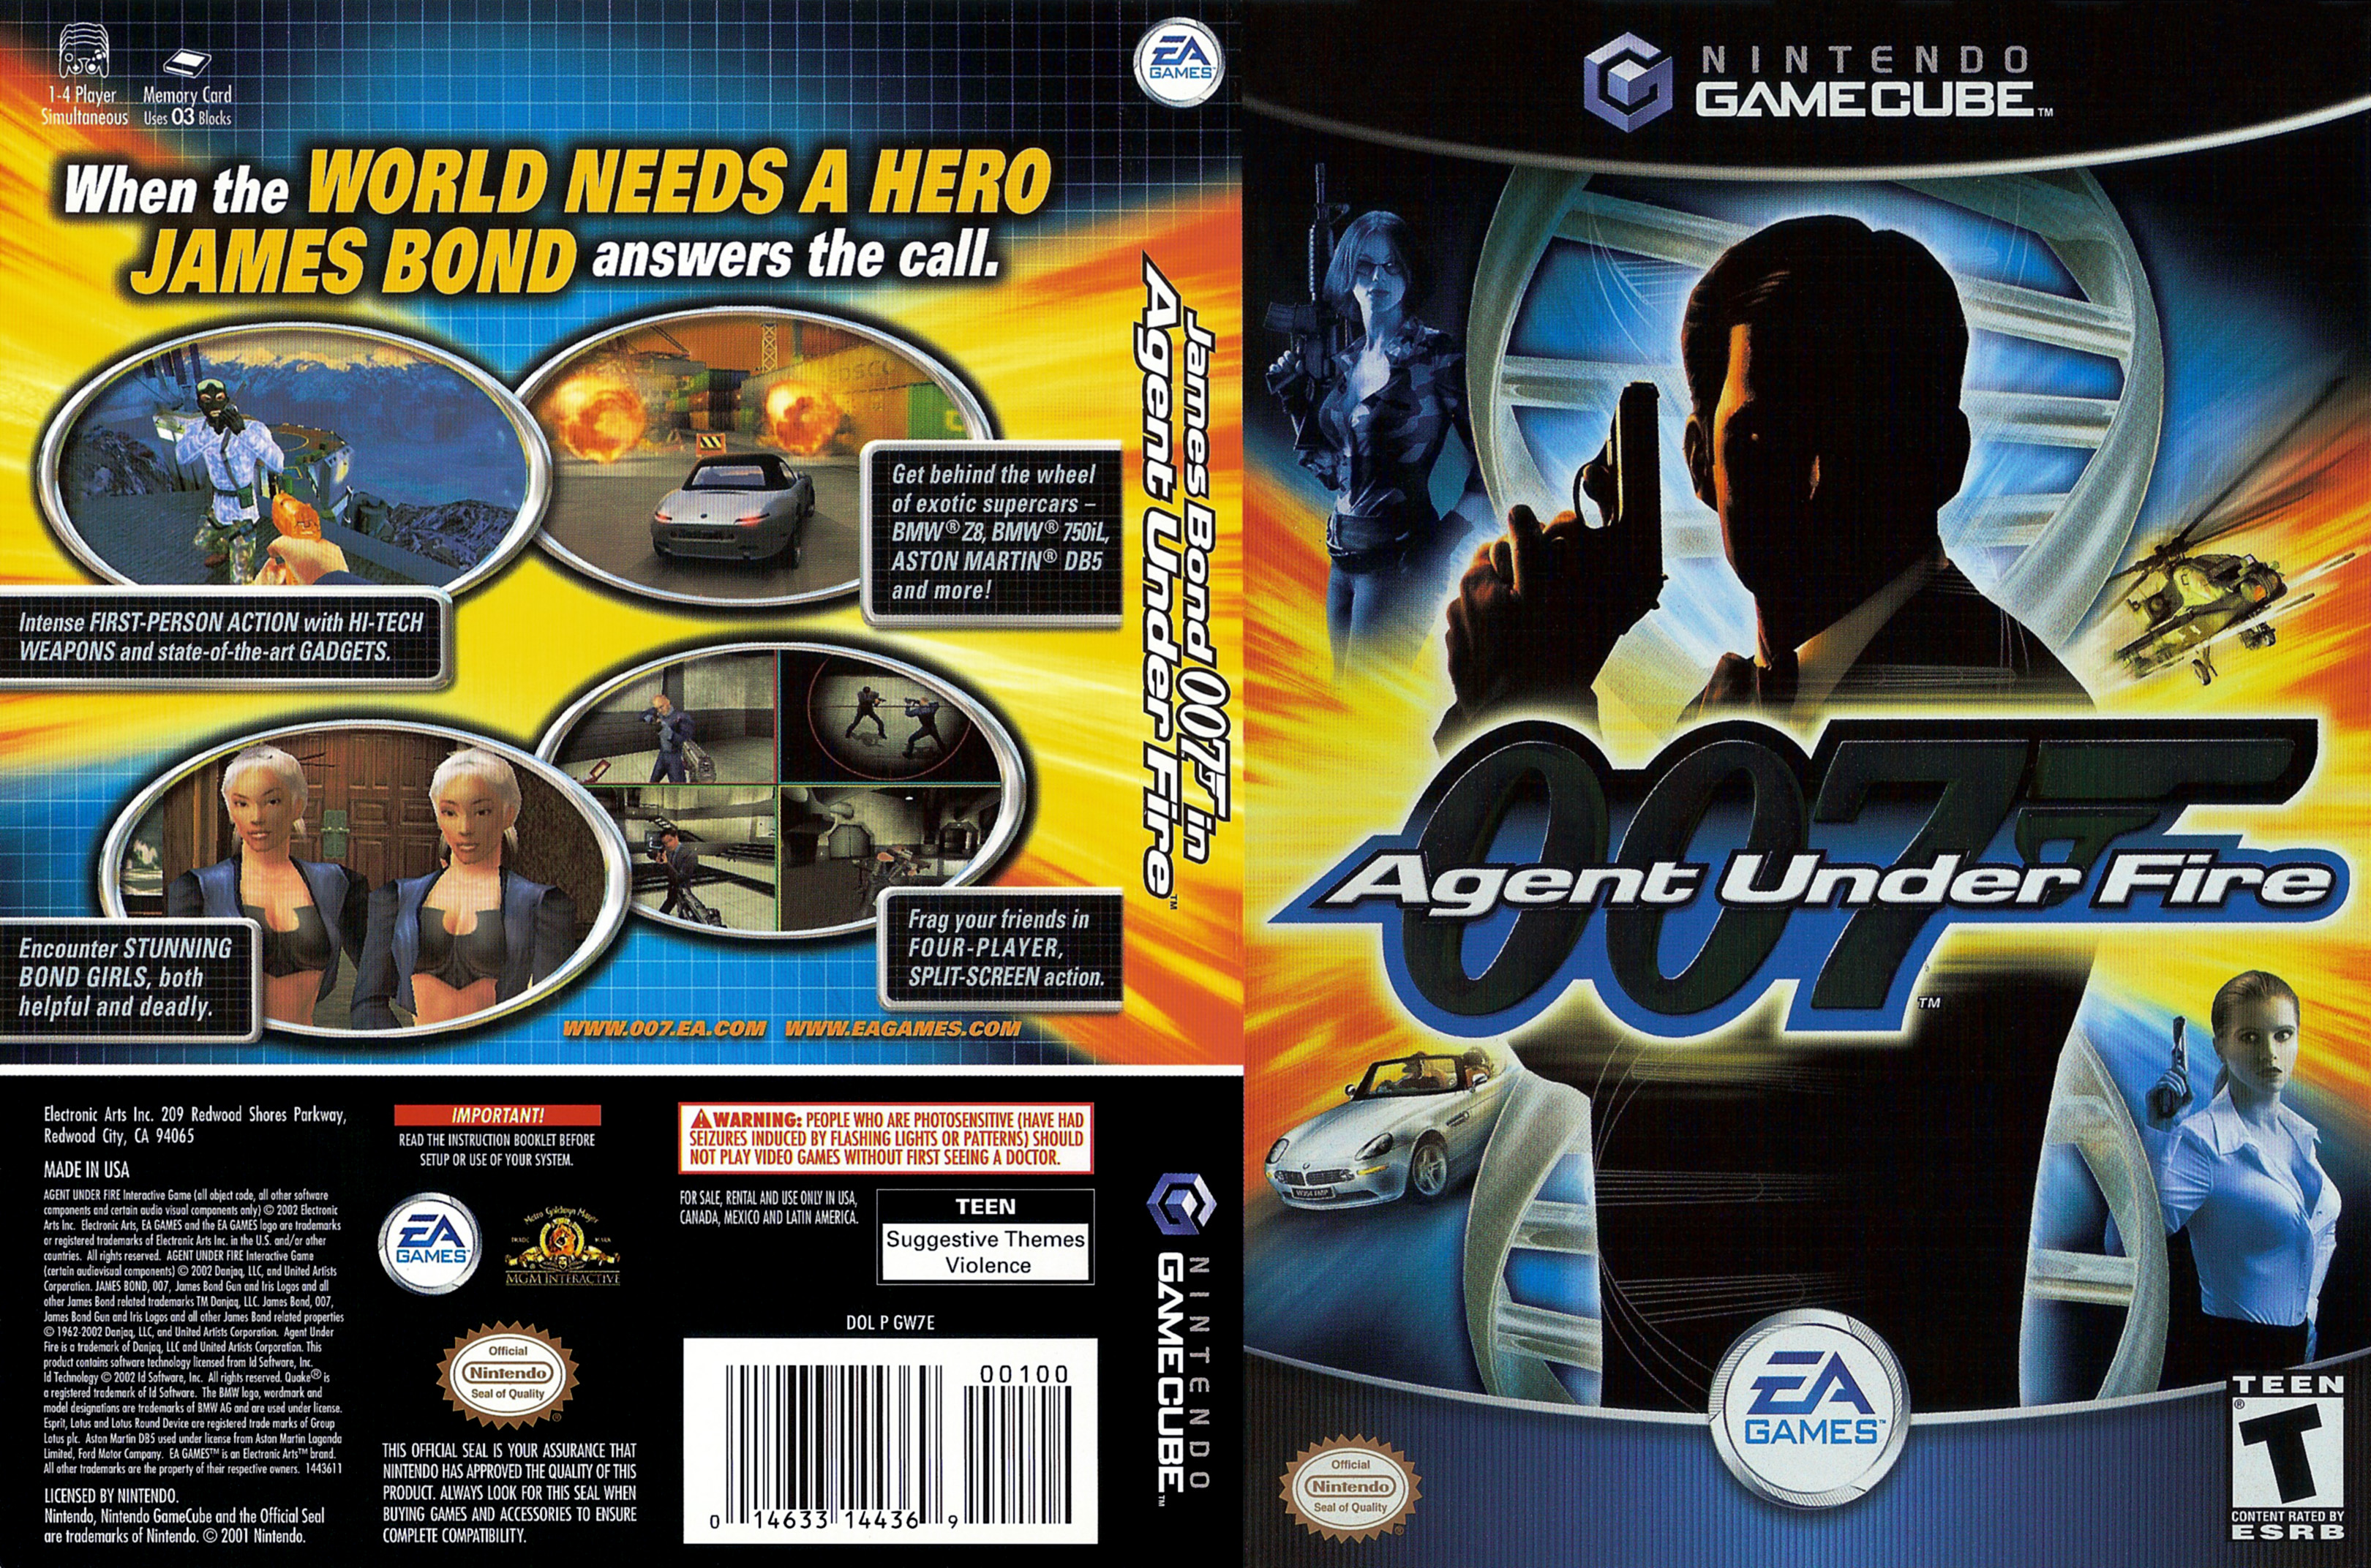 007 Agent Under Fire Cover - Click for full size image